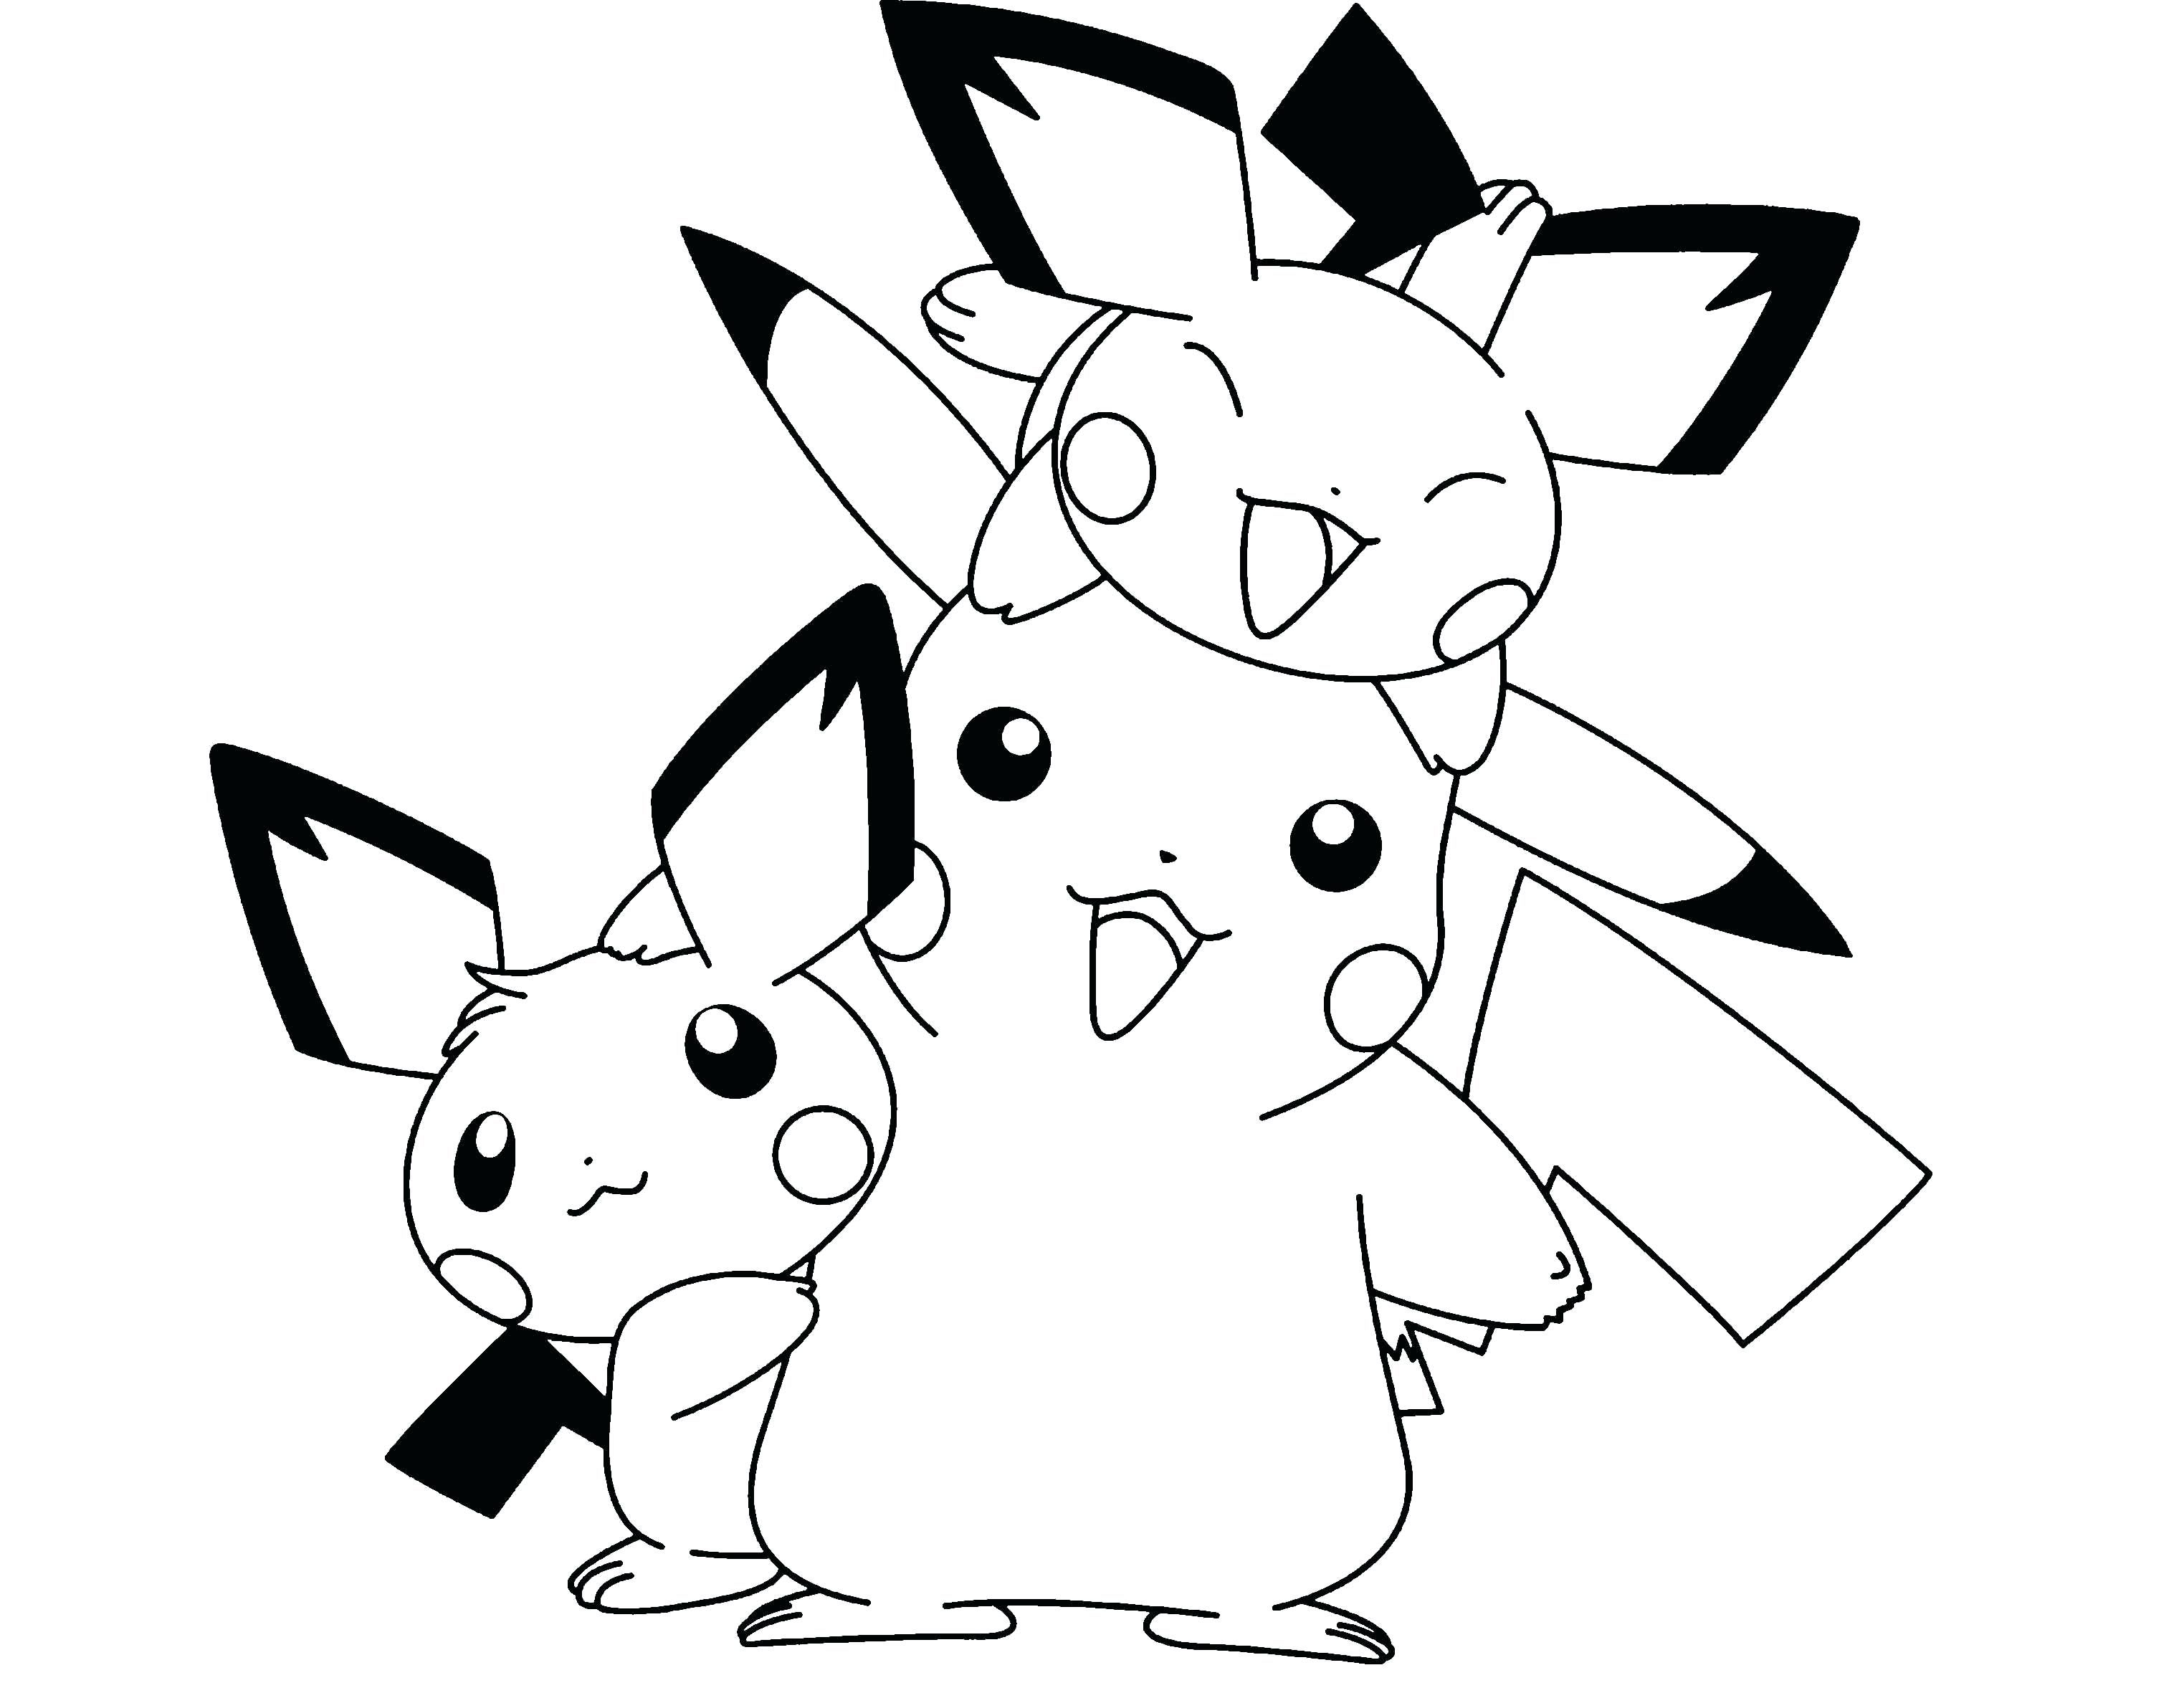 Baby Pikachu Coloring Pages Printable Pikachu Coloring Page